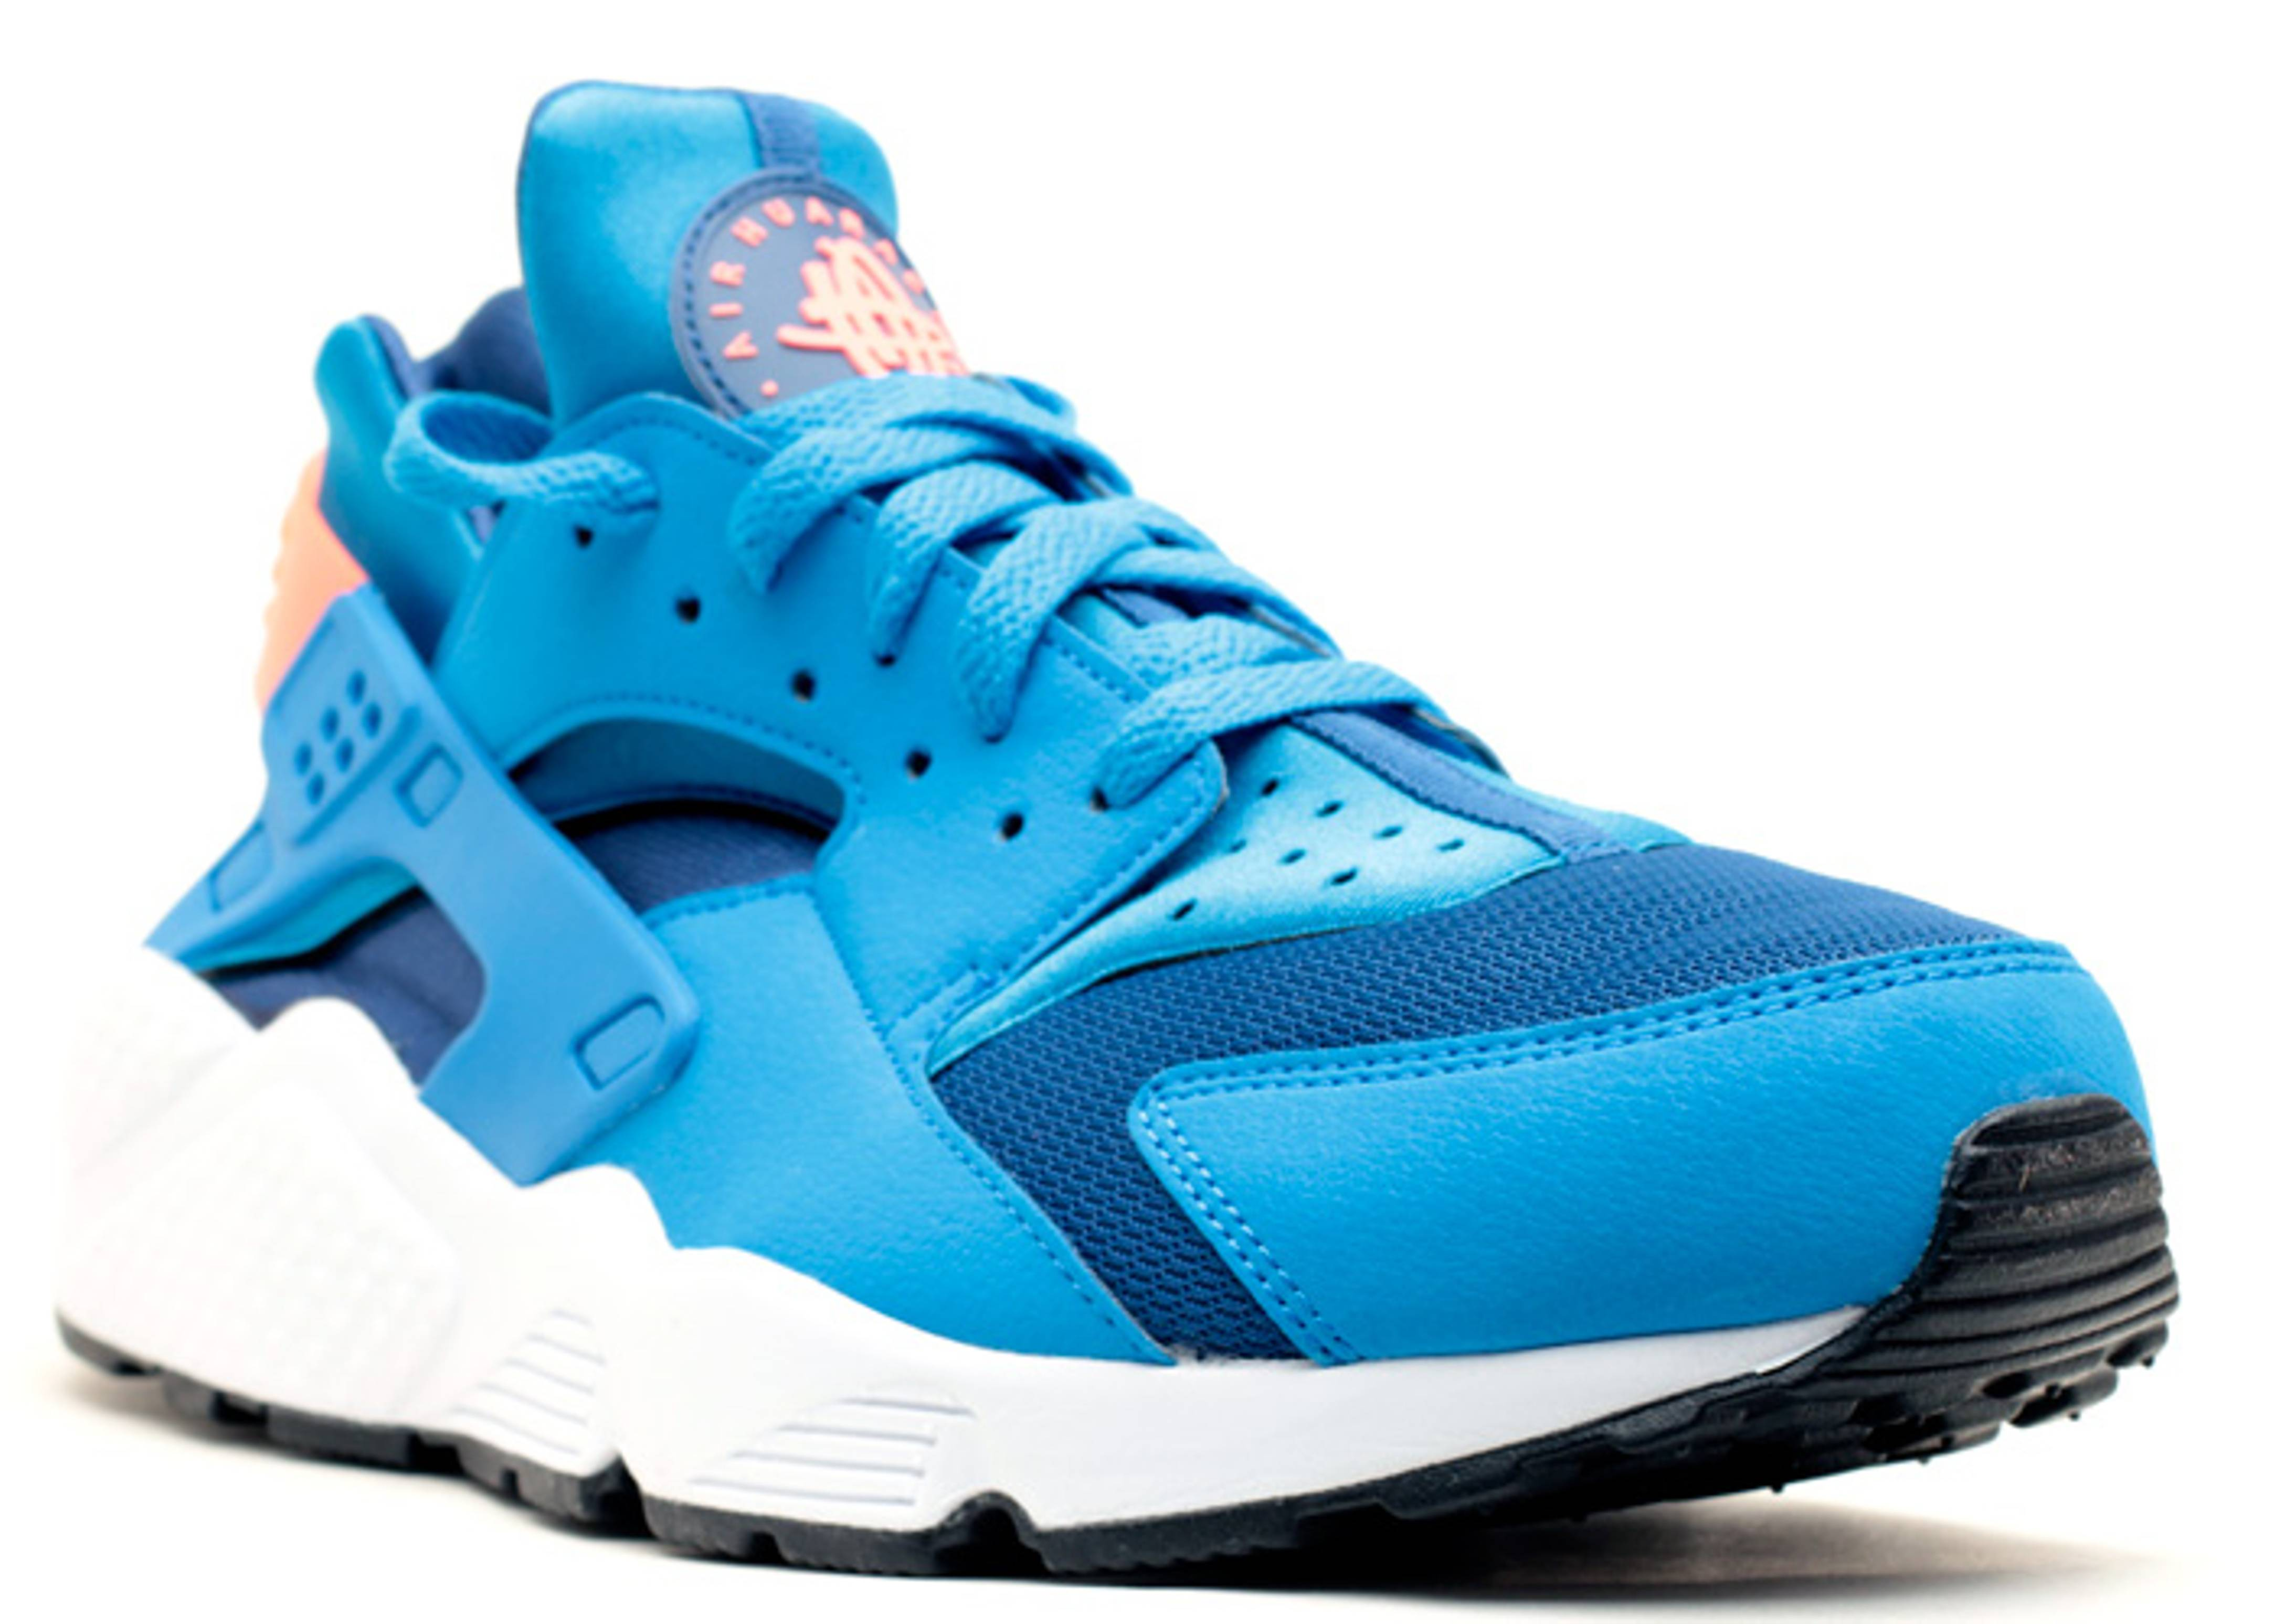 Air Huarache  Nike  318429 402  gym blue/pht blbrght mngwht | Flight  Club